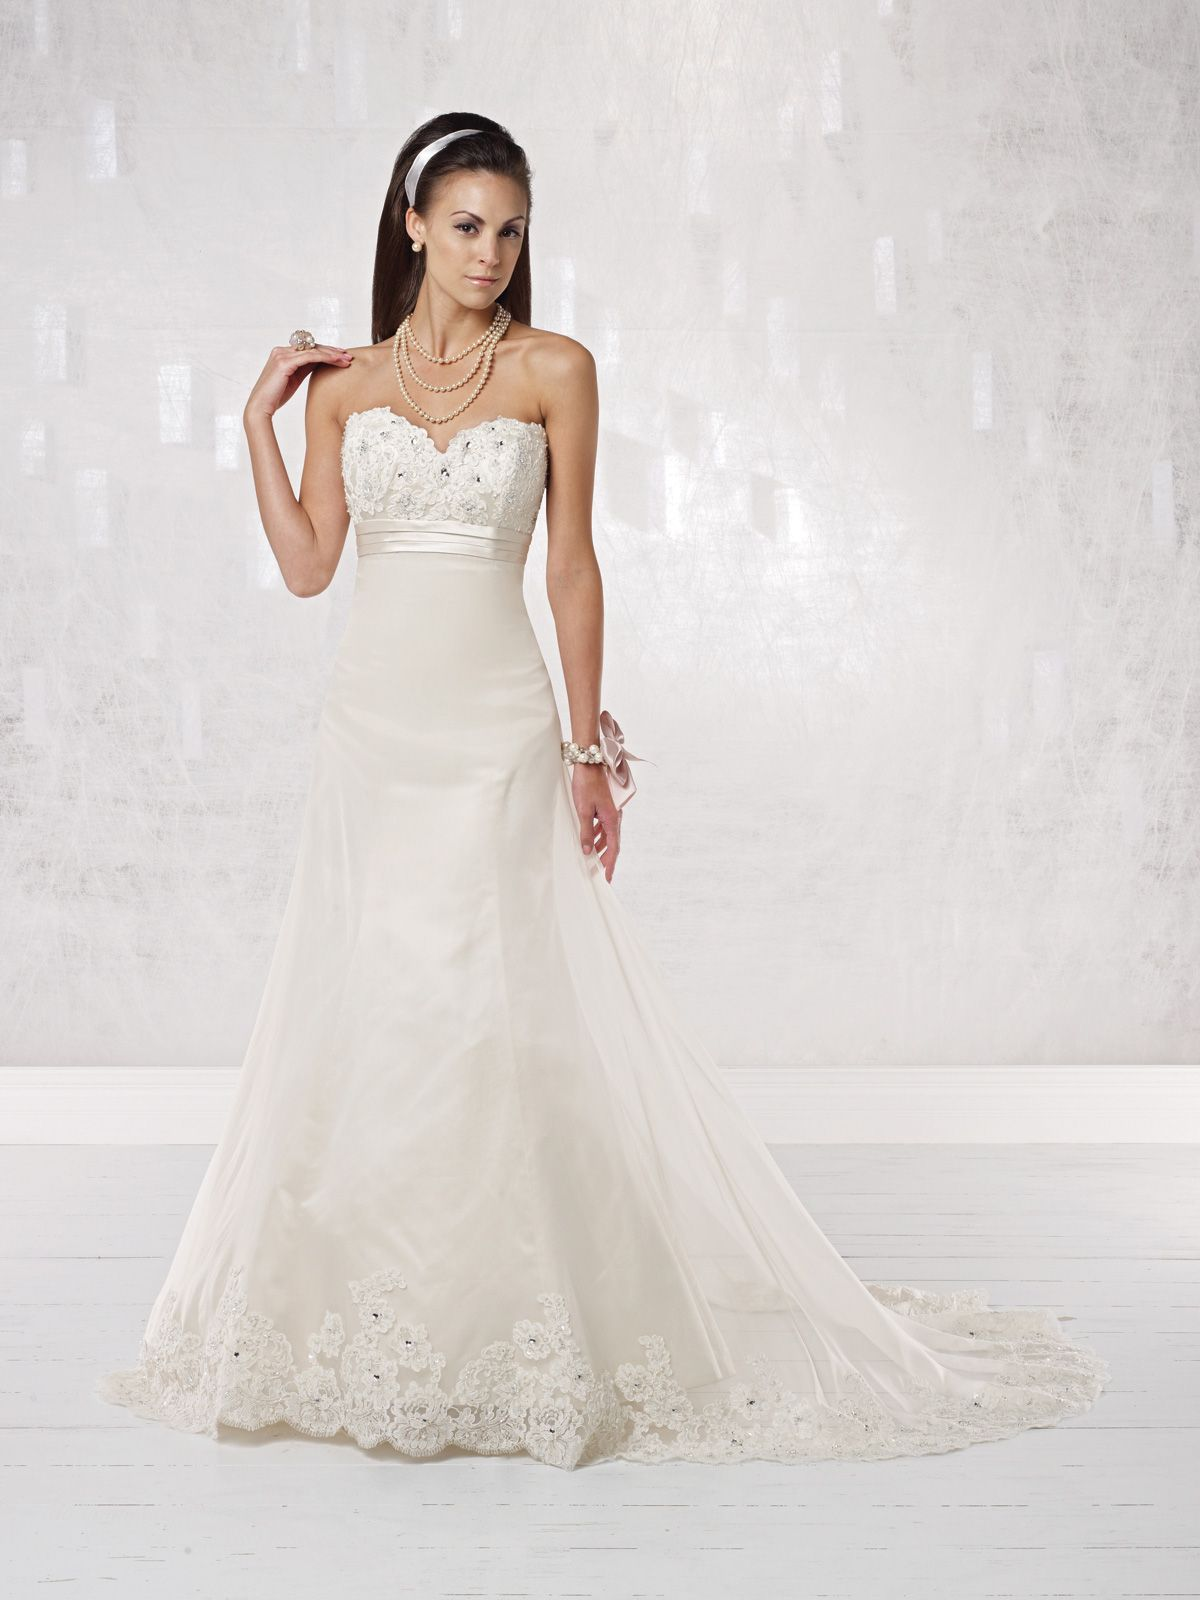 Miranda, you would look awesome in this dress! Too fancy??  Modern A-line sleeveless organza wedding dress